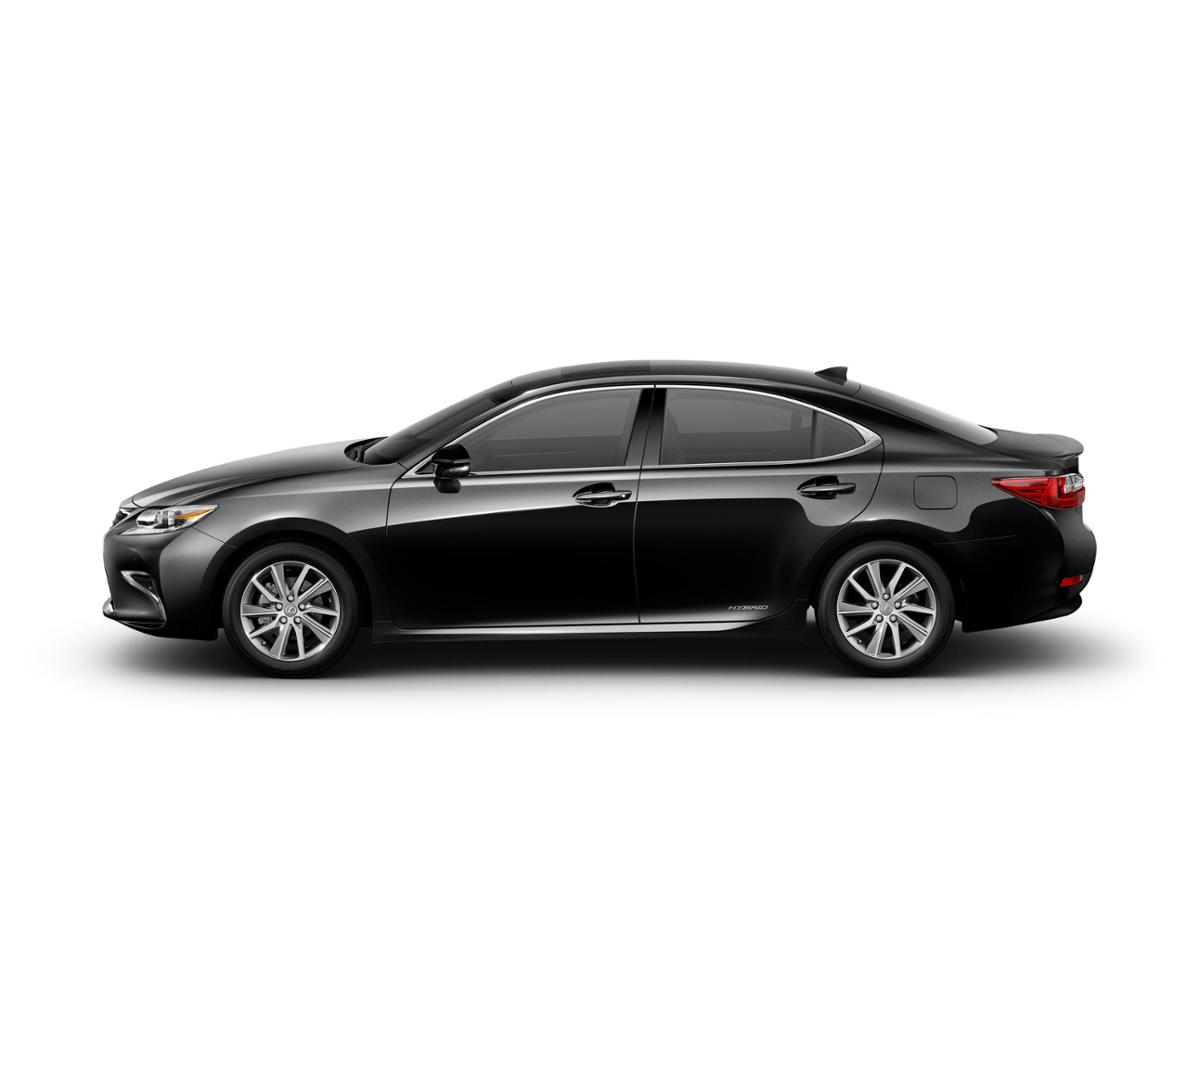 2017 Lexus ES 300h Vehicle Photo in Dallas, TX 75209